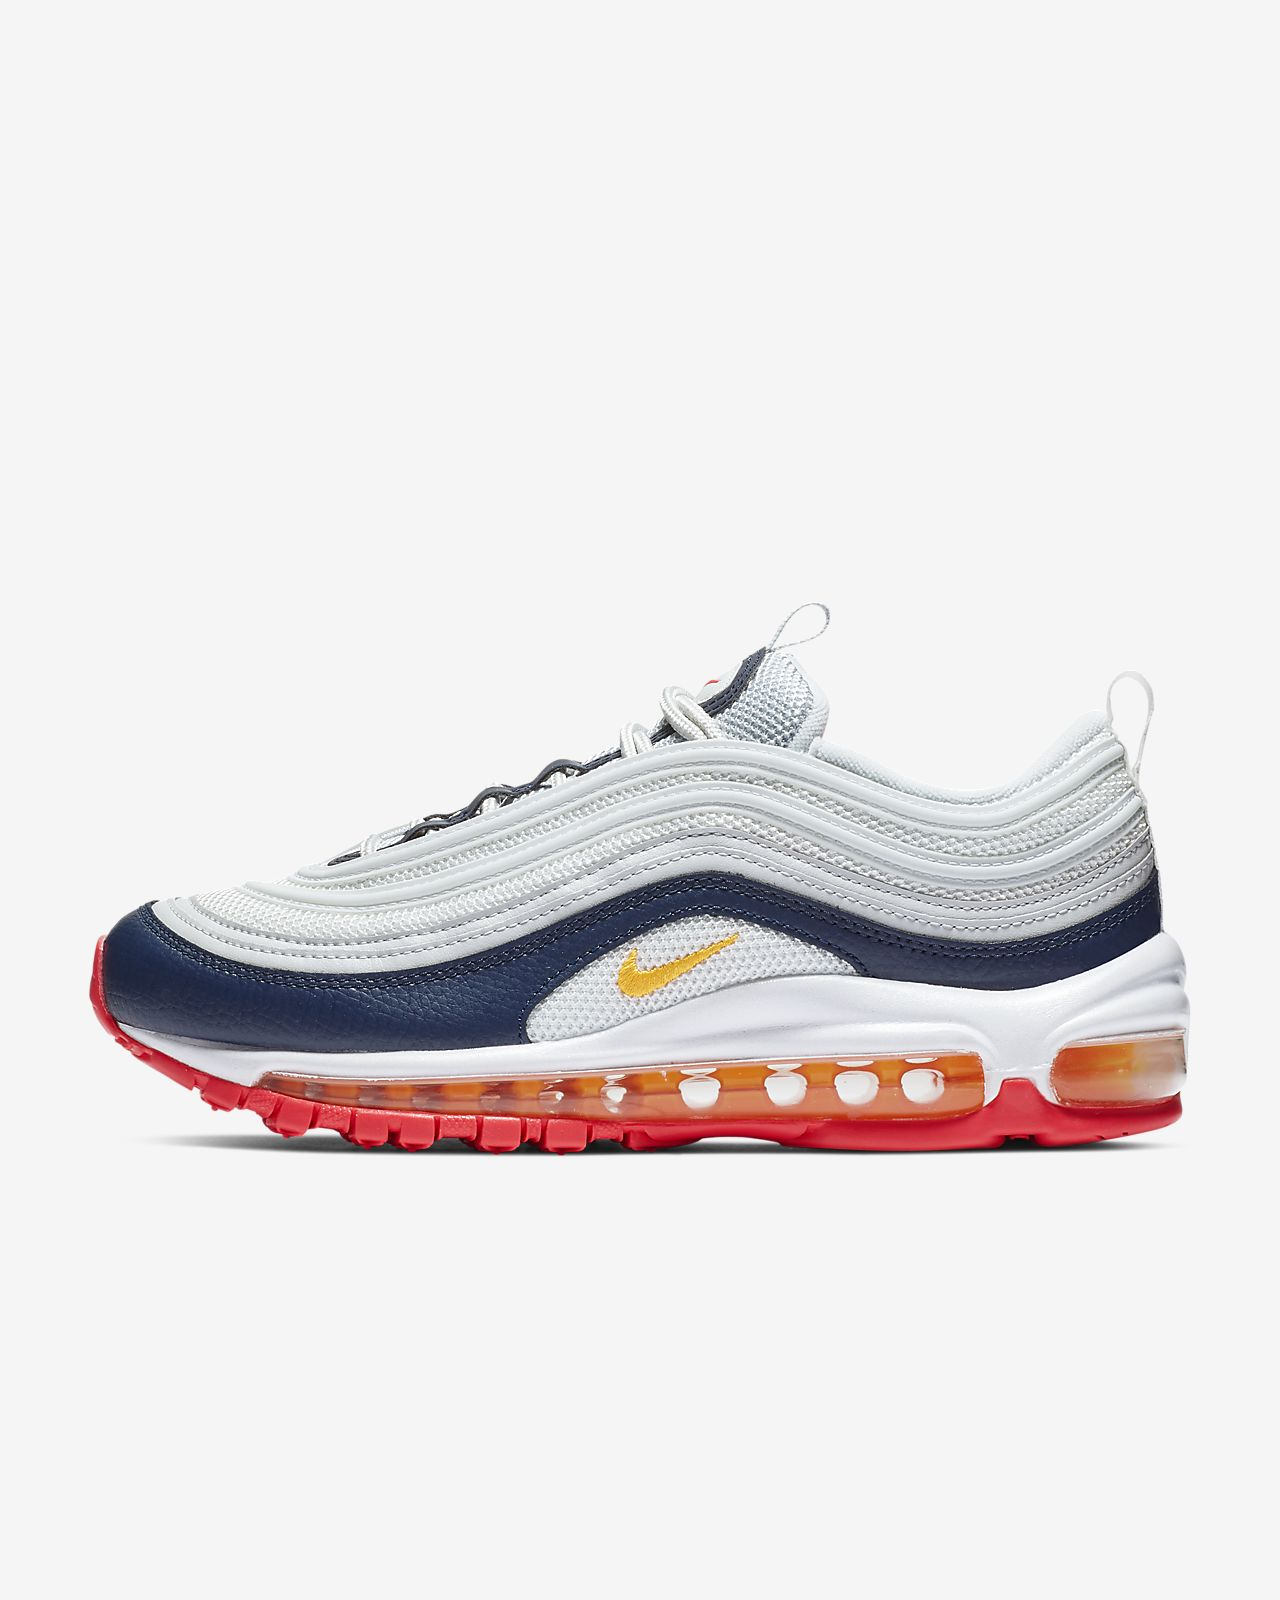 29040cc1d90c Nike Air Max 97 Premium Women s Shoe. Nike.com GB